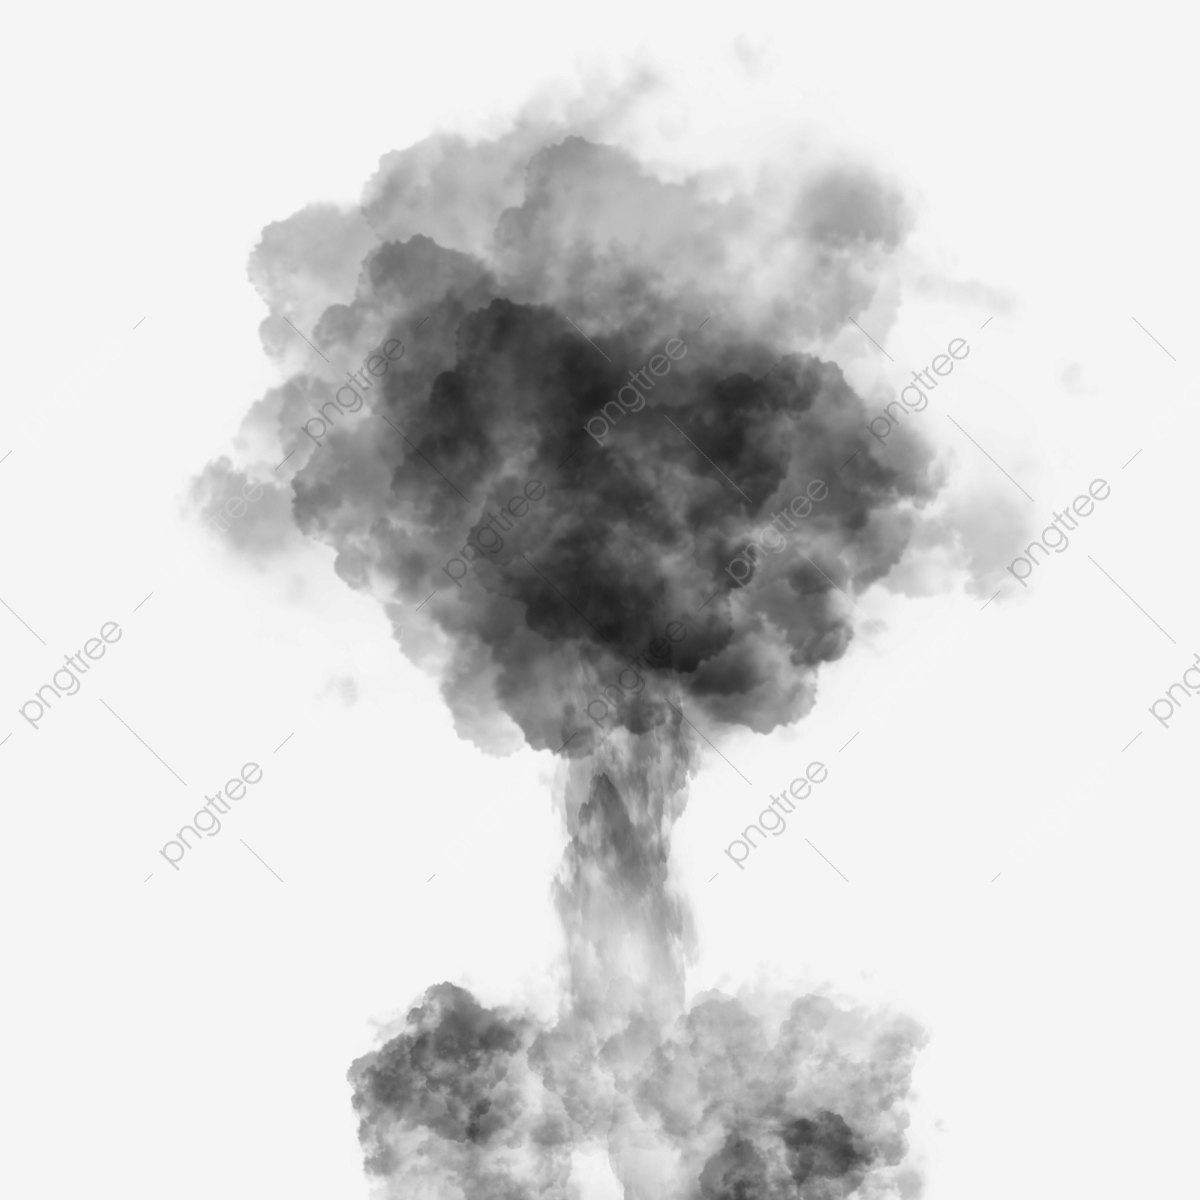 bomb blast png images vector and psd files free download on pngtree https pngtree com freepng ink smoke color effect commercial element mushroom atomic bomb 4072667 html